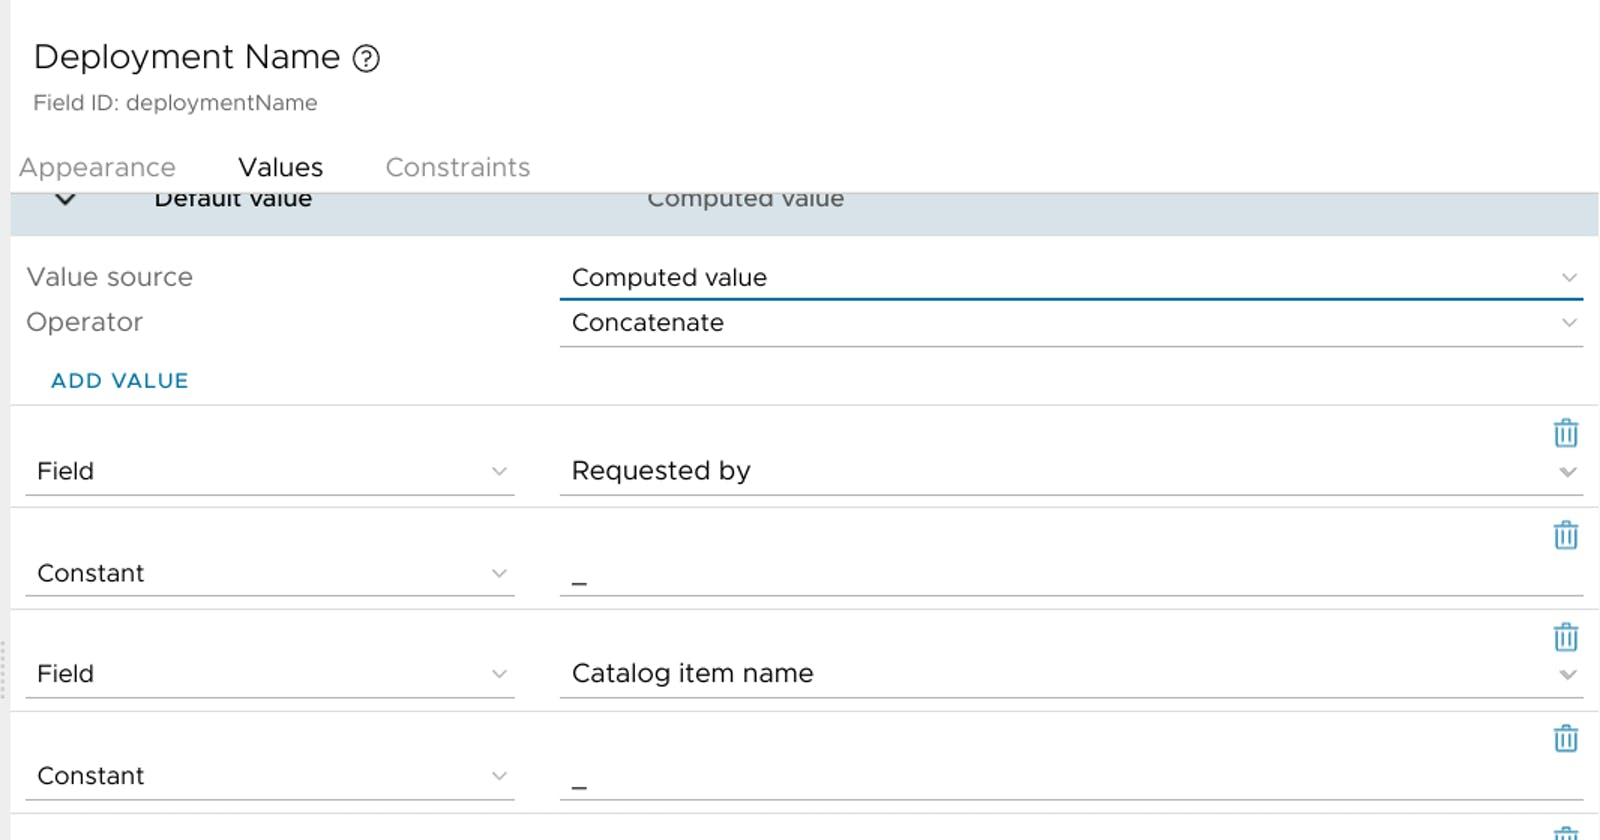 vRA8 Automatic Deployment Naming - Another Take